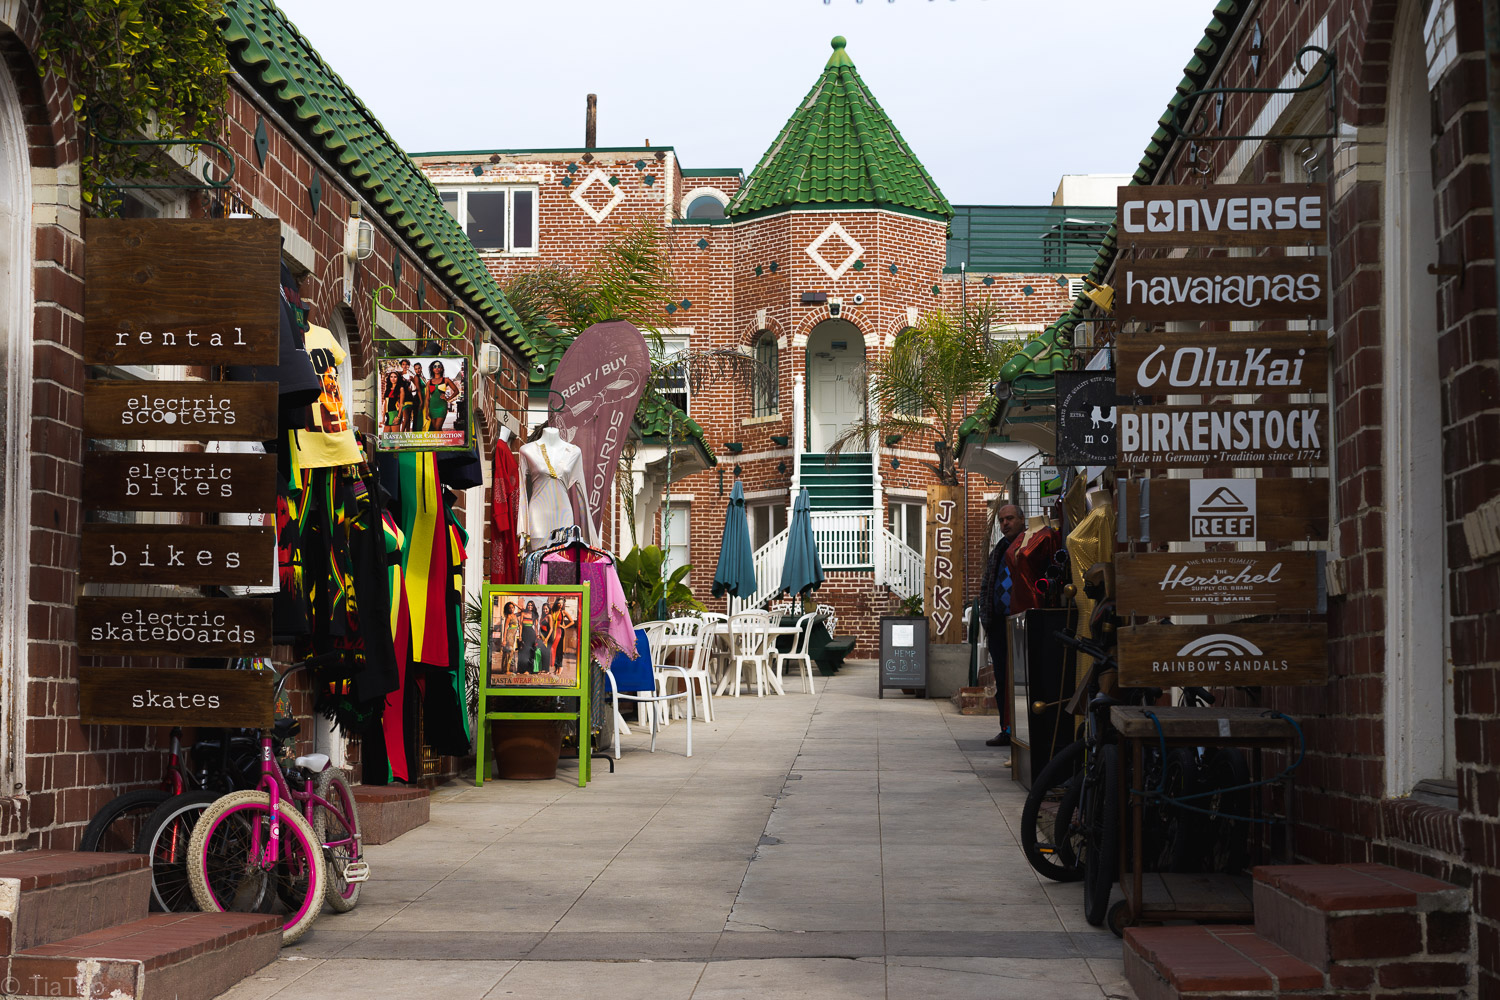 Quirky shops in Venice